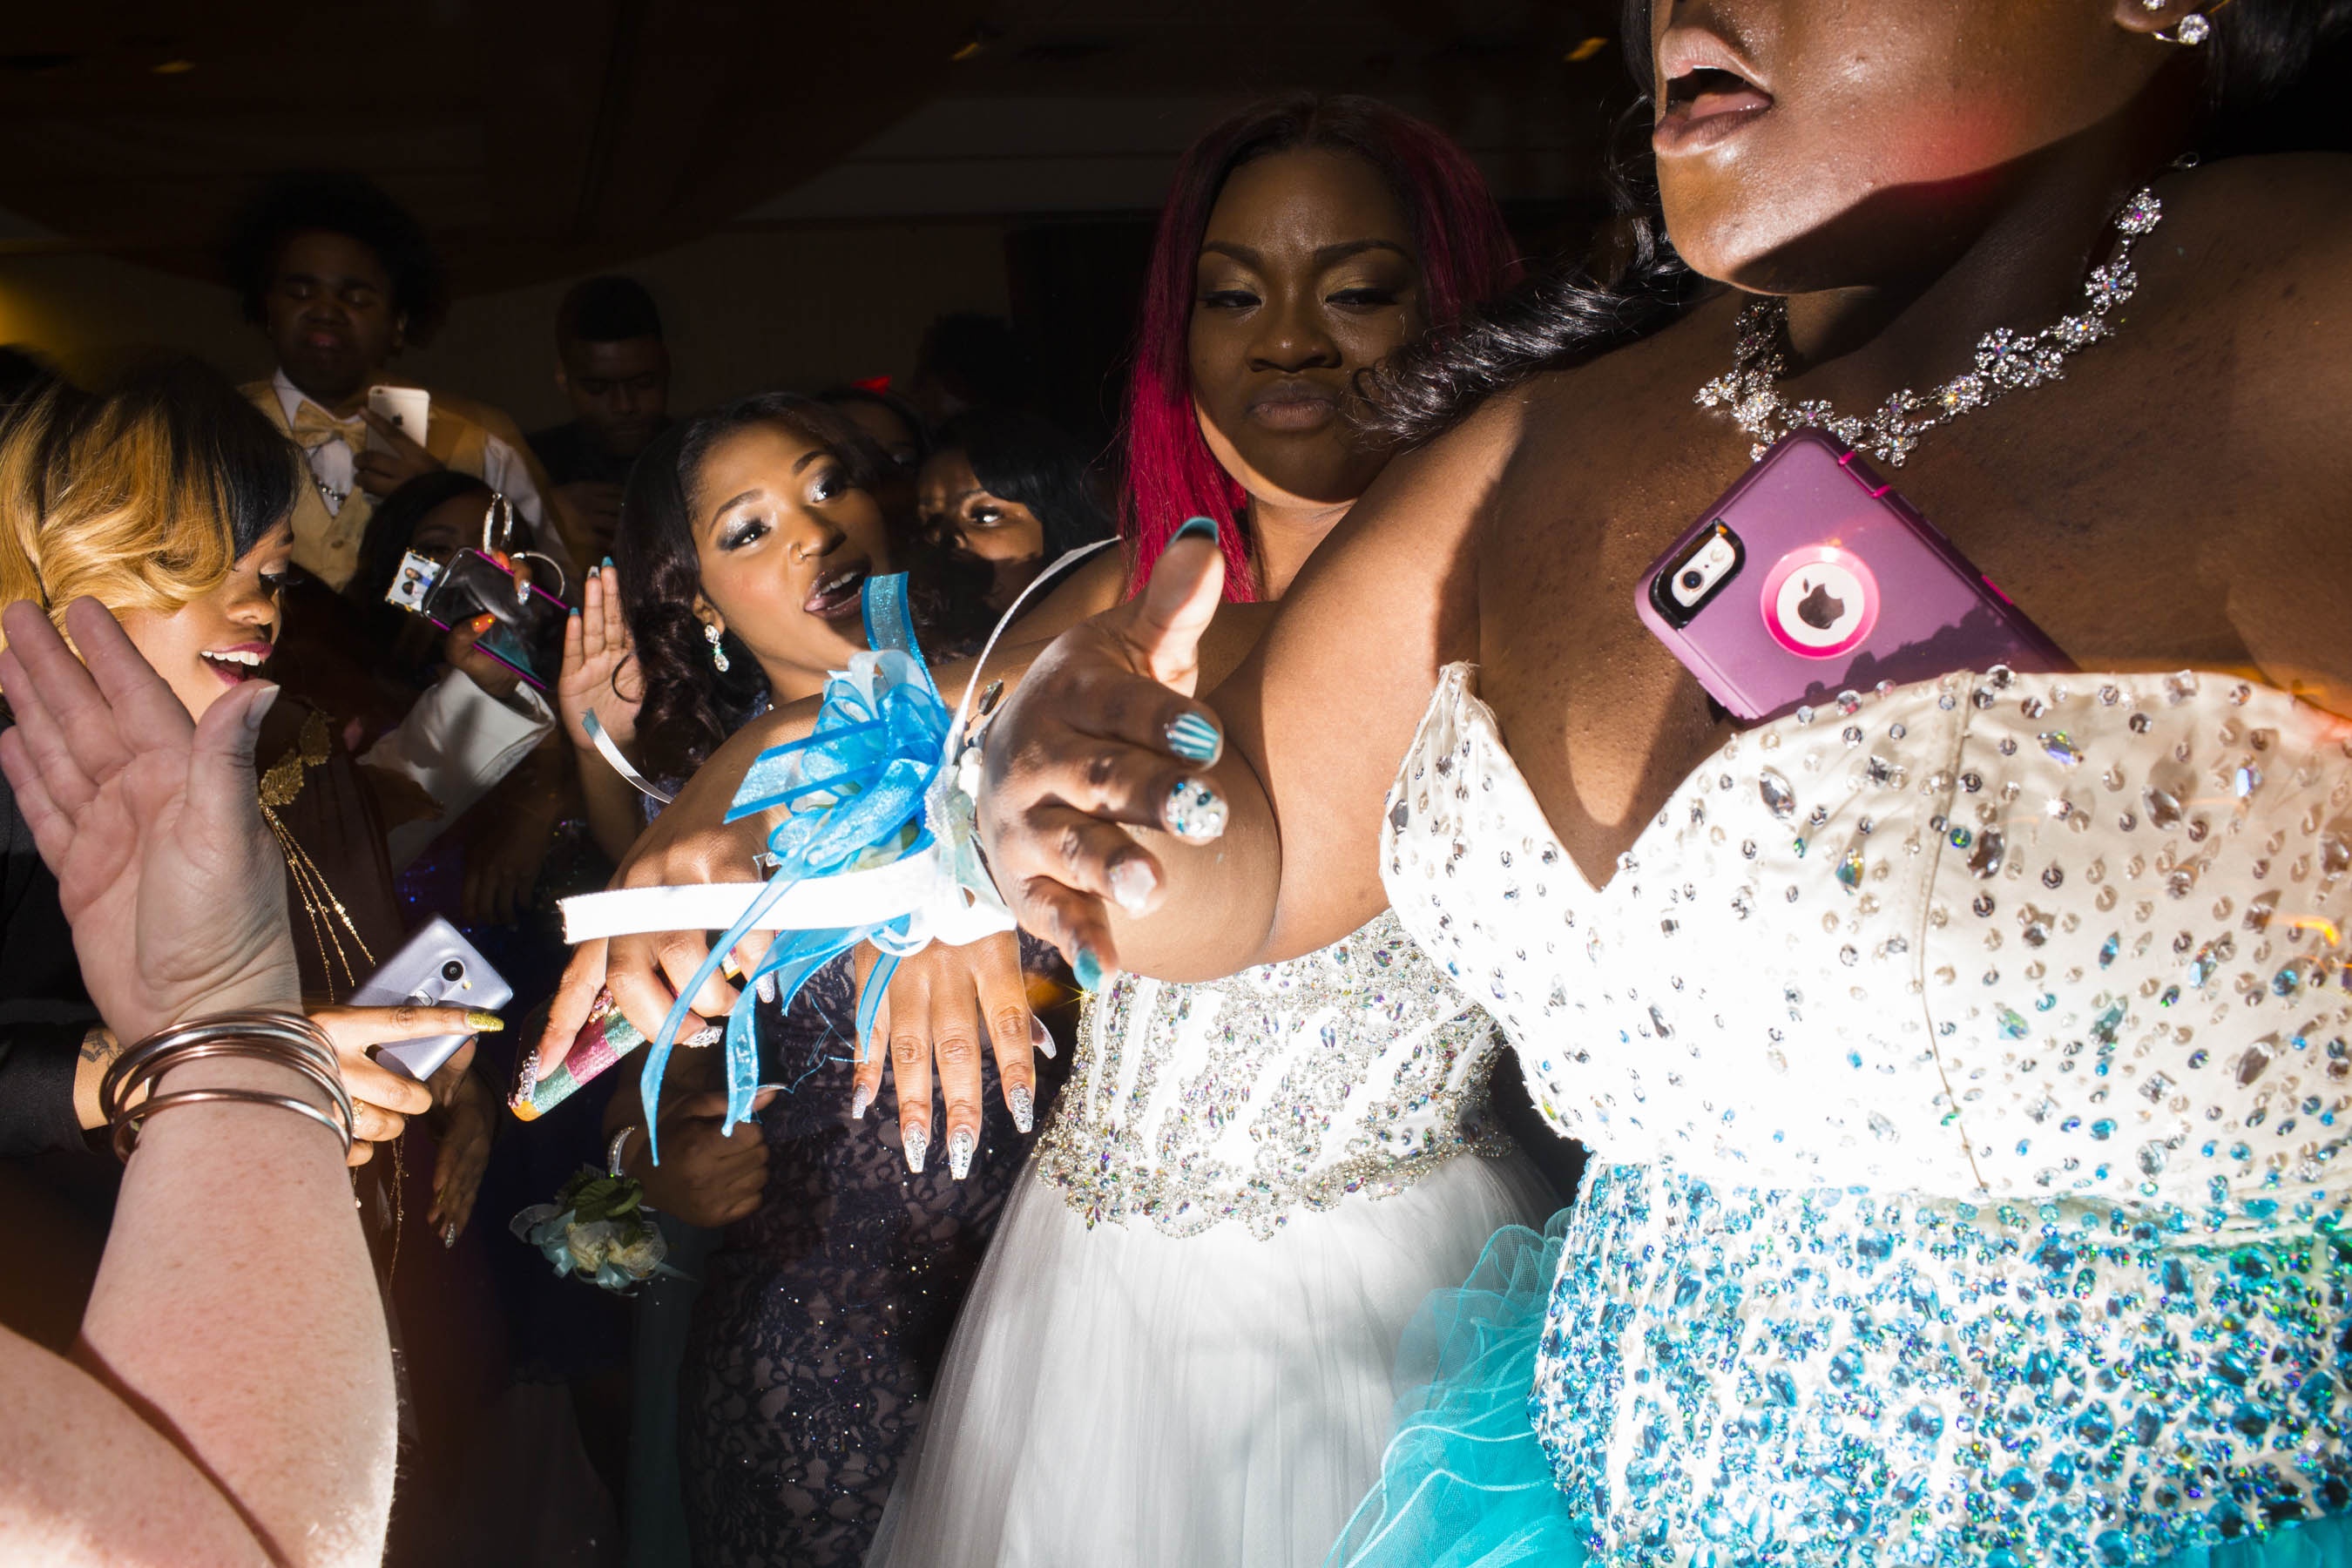 Students dance at the high school prom on Saturday, May 21, 2016 in Flint, Michigan.